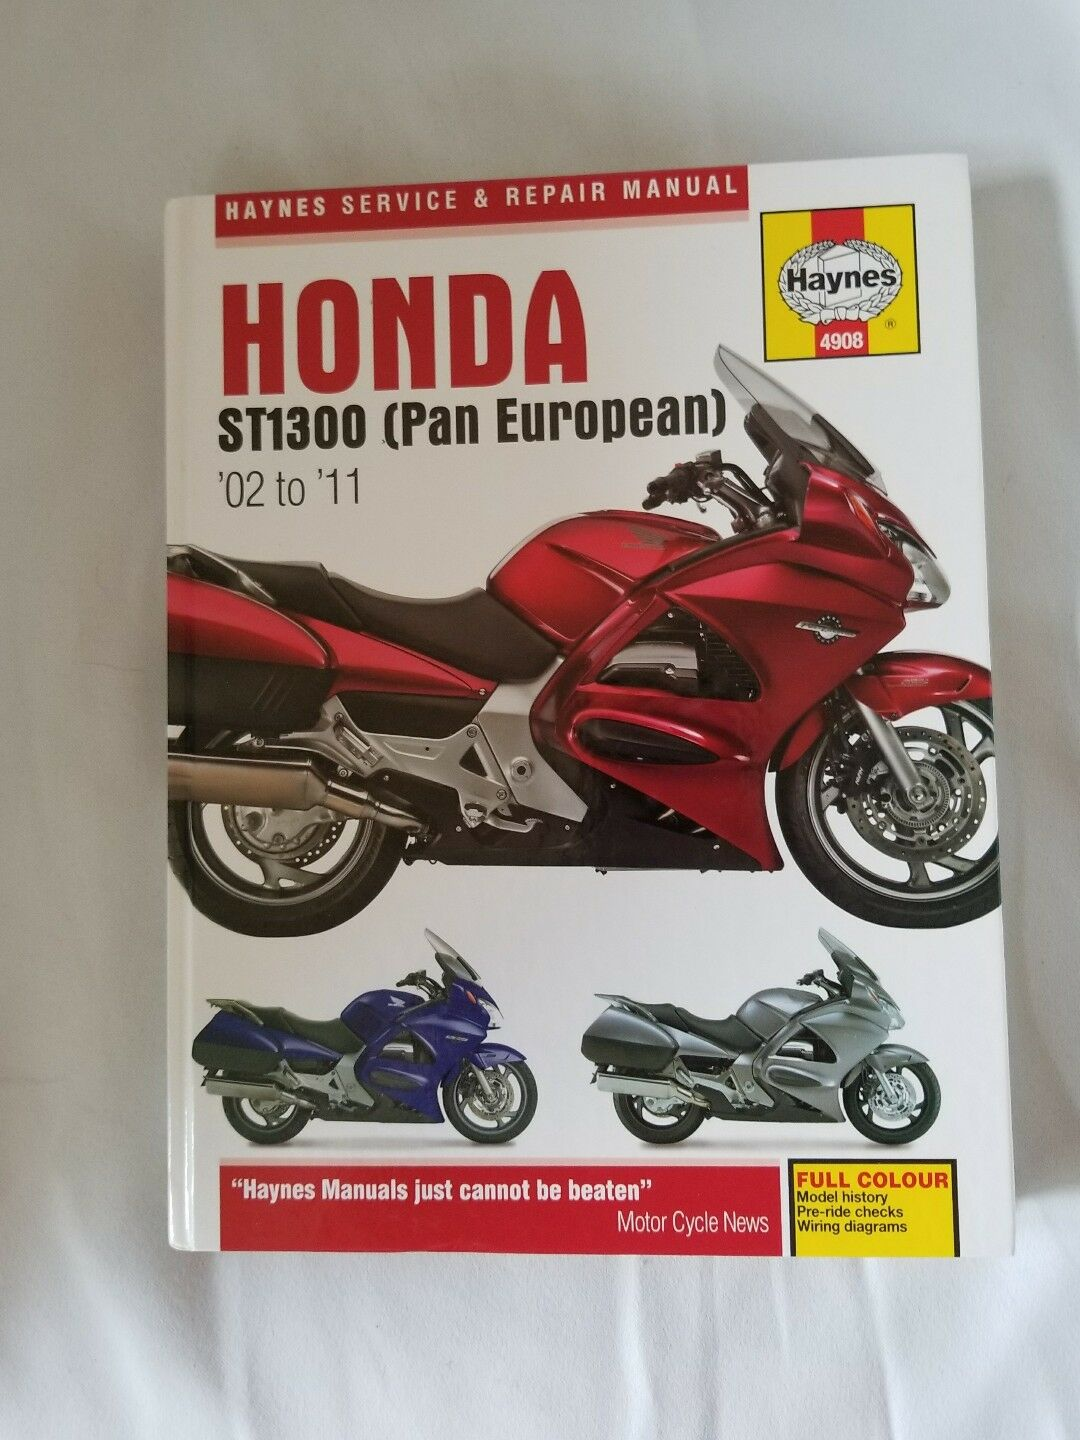 Haynes 2002-2011 Honda St1300 Owners Maintenance Repair Service Shop Manual  | eBay